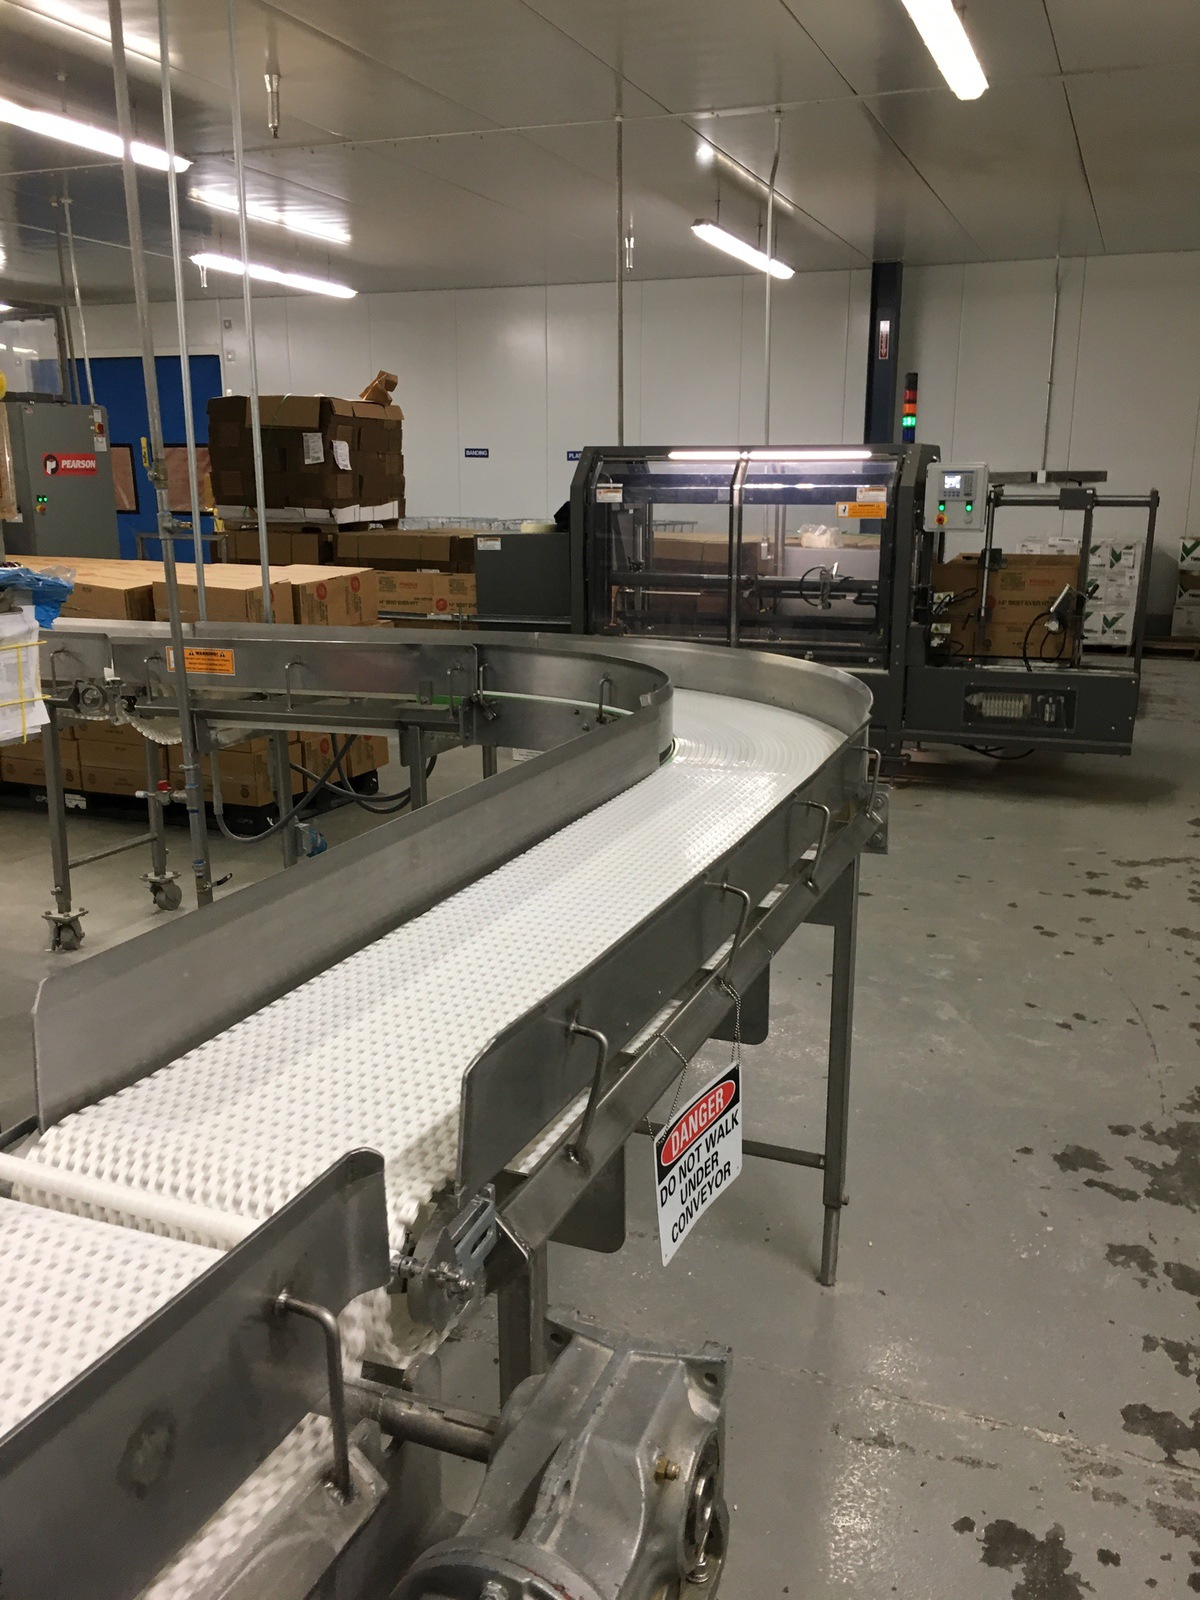 2013 Intralox Conveyors, Approx 80 ft Overall Length, 15.5in W Belt, (   Insp by Appt   Rig Fee: 750 - Image 3 of 10